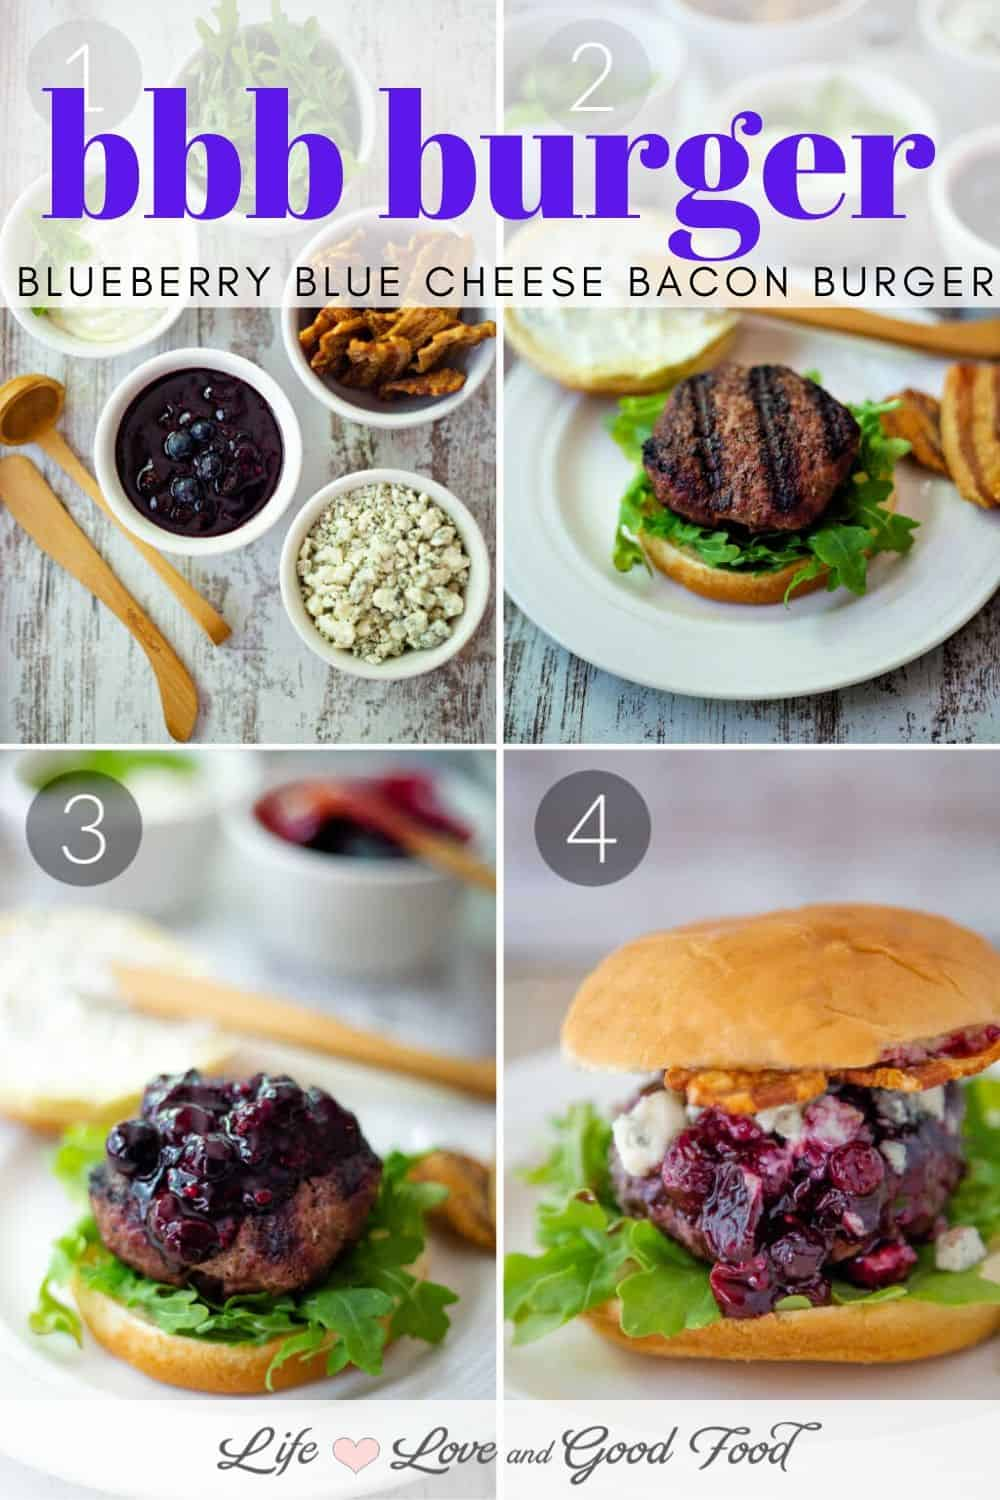 Juicy grilled hamburgers are dressed with homemade basil aioli, arugula, blueberry barbecue sauce, crispy smoked bacon, and plenty of blue cheese crumbles for just the right combination of sweet and savory in this amazing gourmet burger.